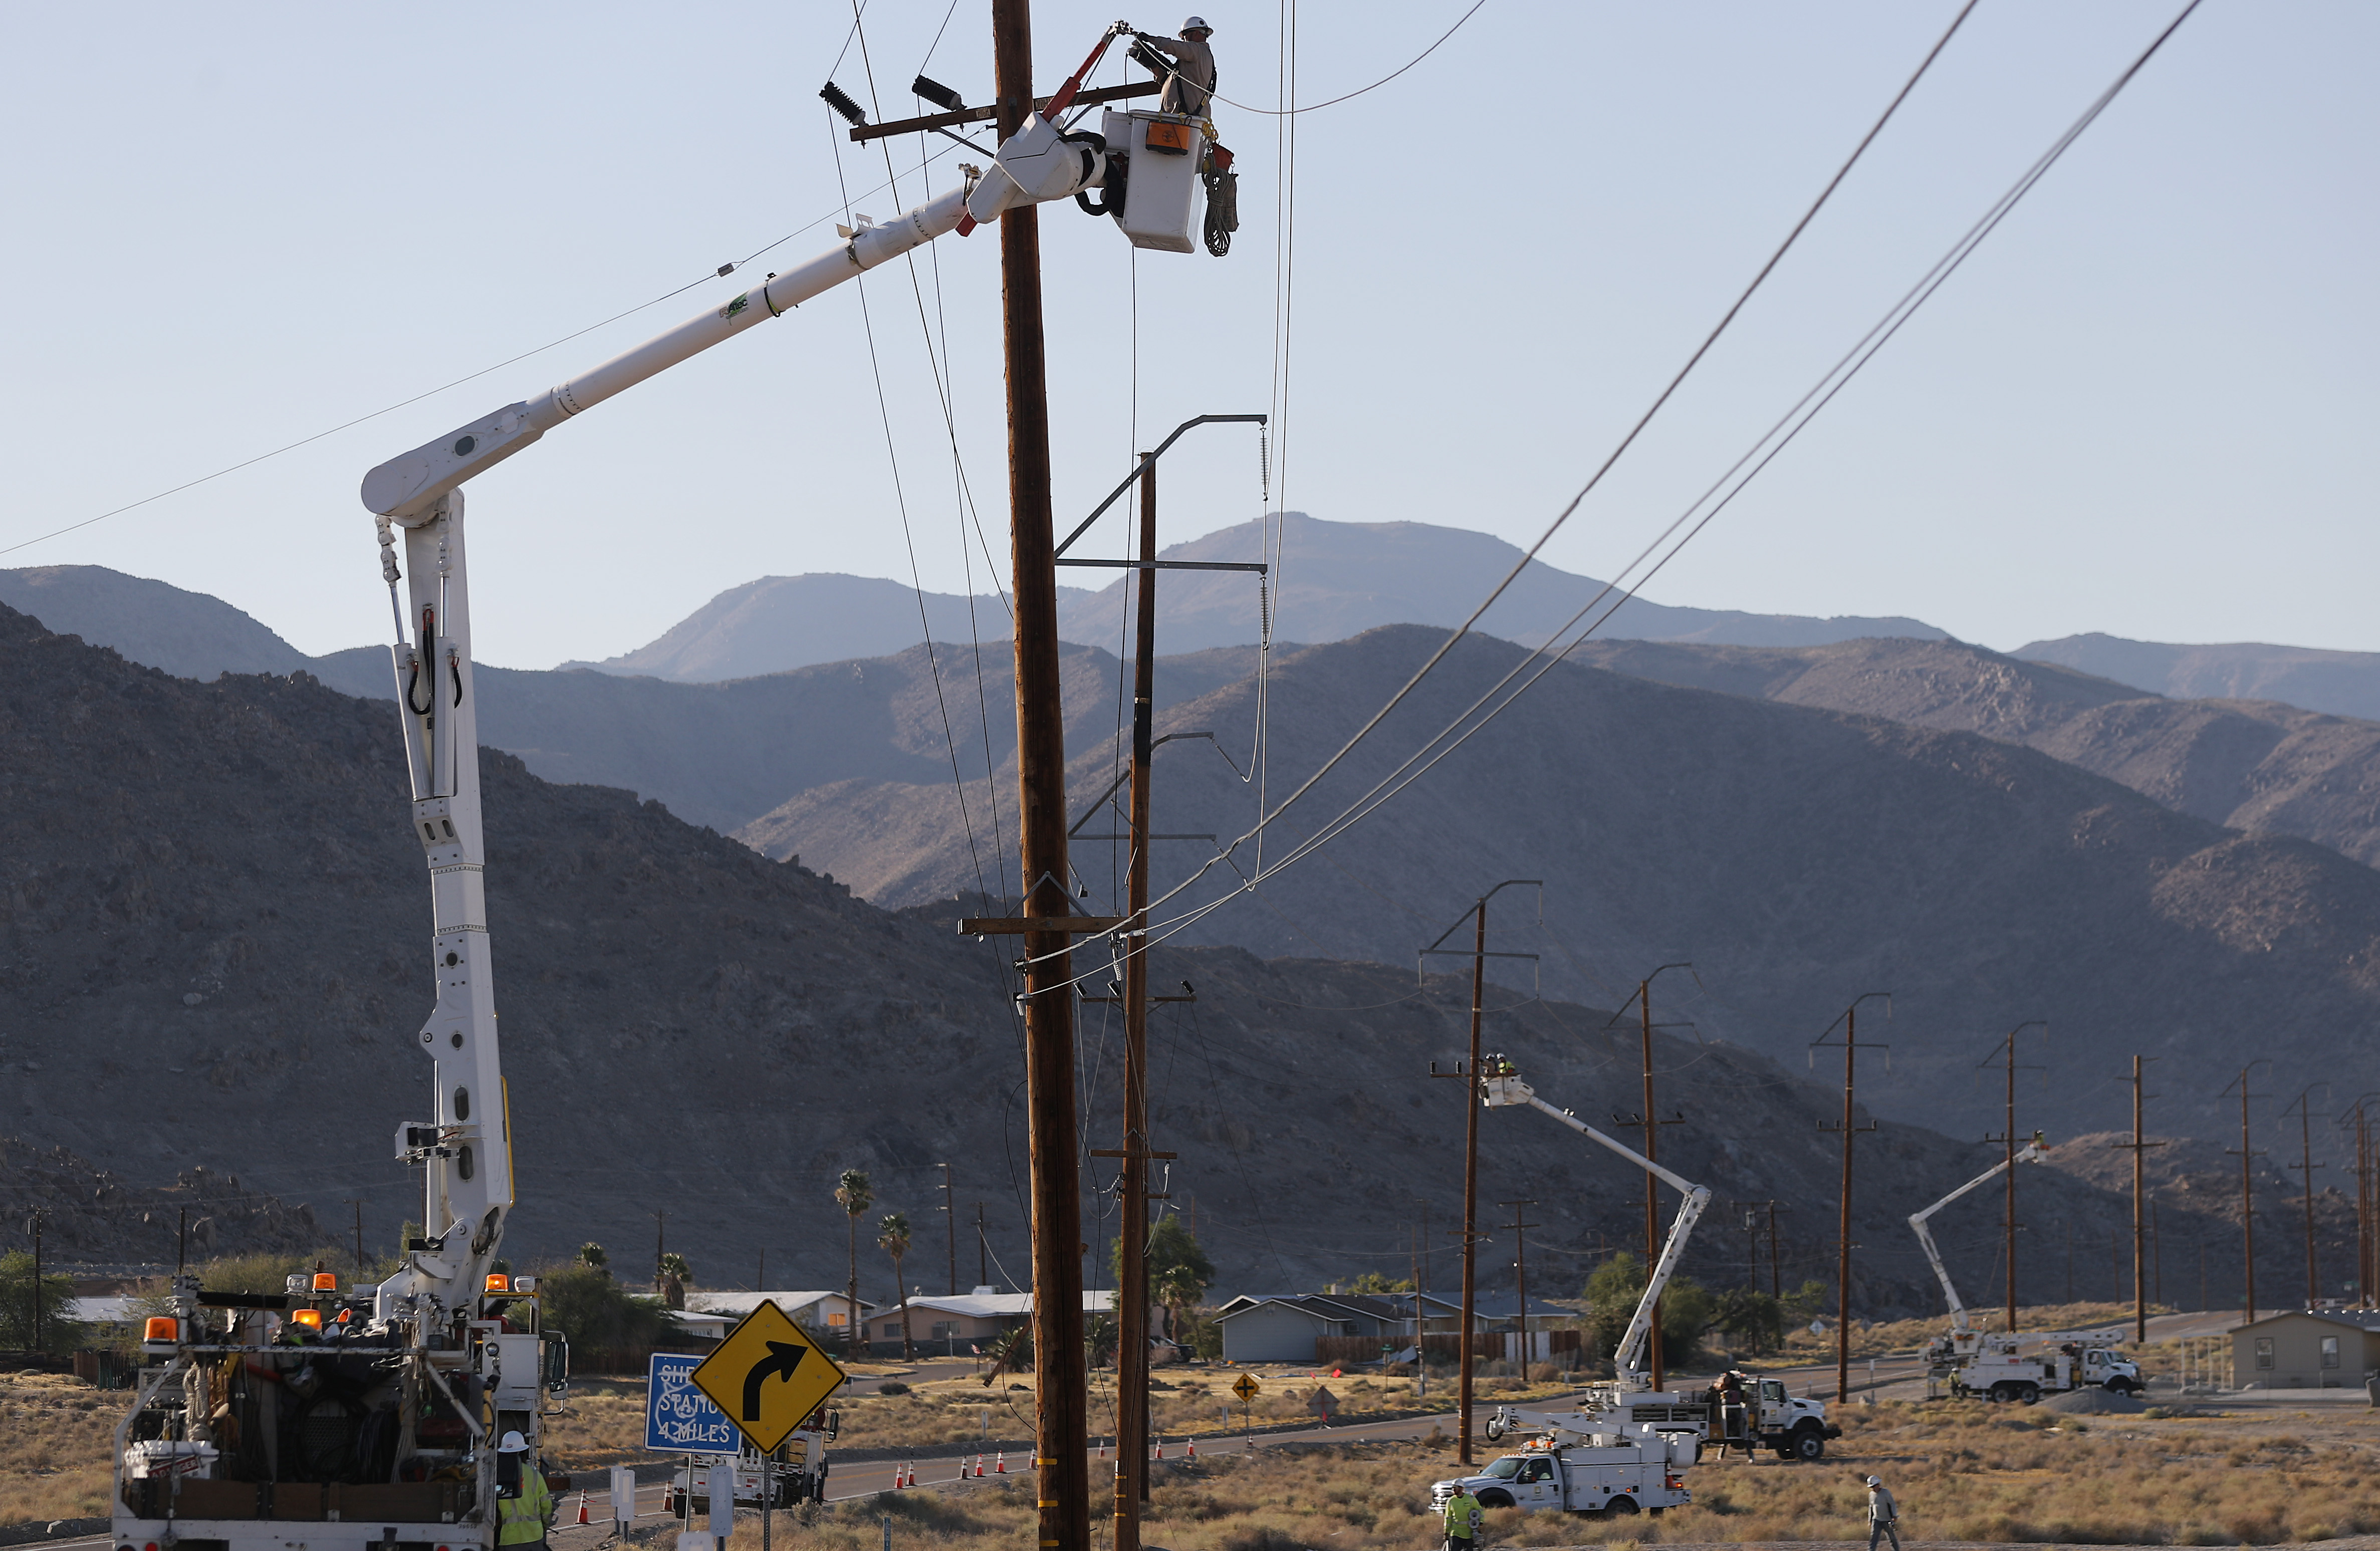 Workers repair damaged utility lines after a 6.4 magnitude earthquake struck the area on July 4, 2019 in Trona, California. The earthquake was the largest to strike Southern California in 20 years with the epicenter located in a remote area of the Mojave Desert. The temblor was felt by residents across much of Southern California. (Photo by Mario Tama/Getty Images)